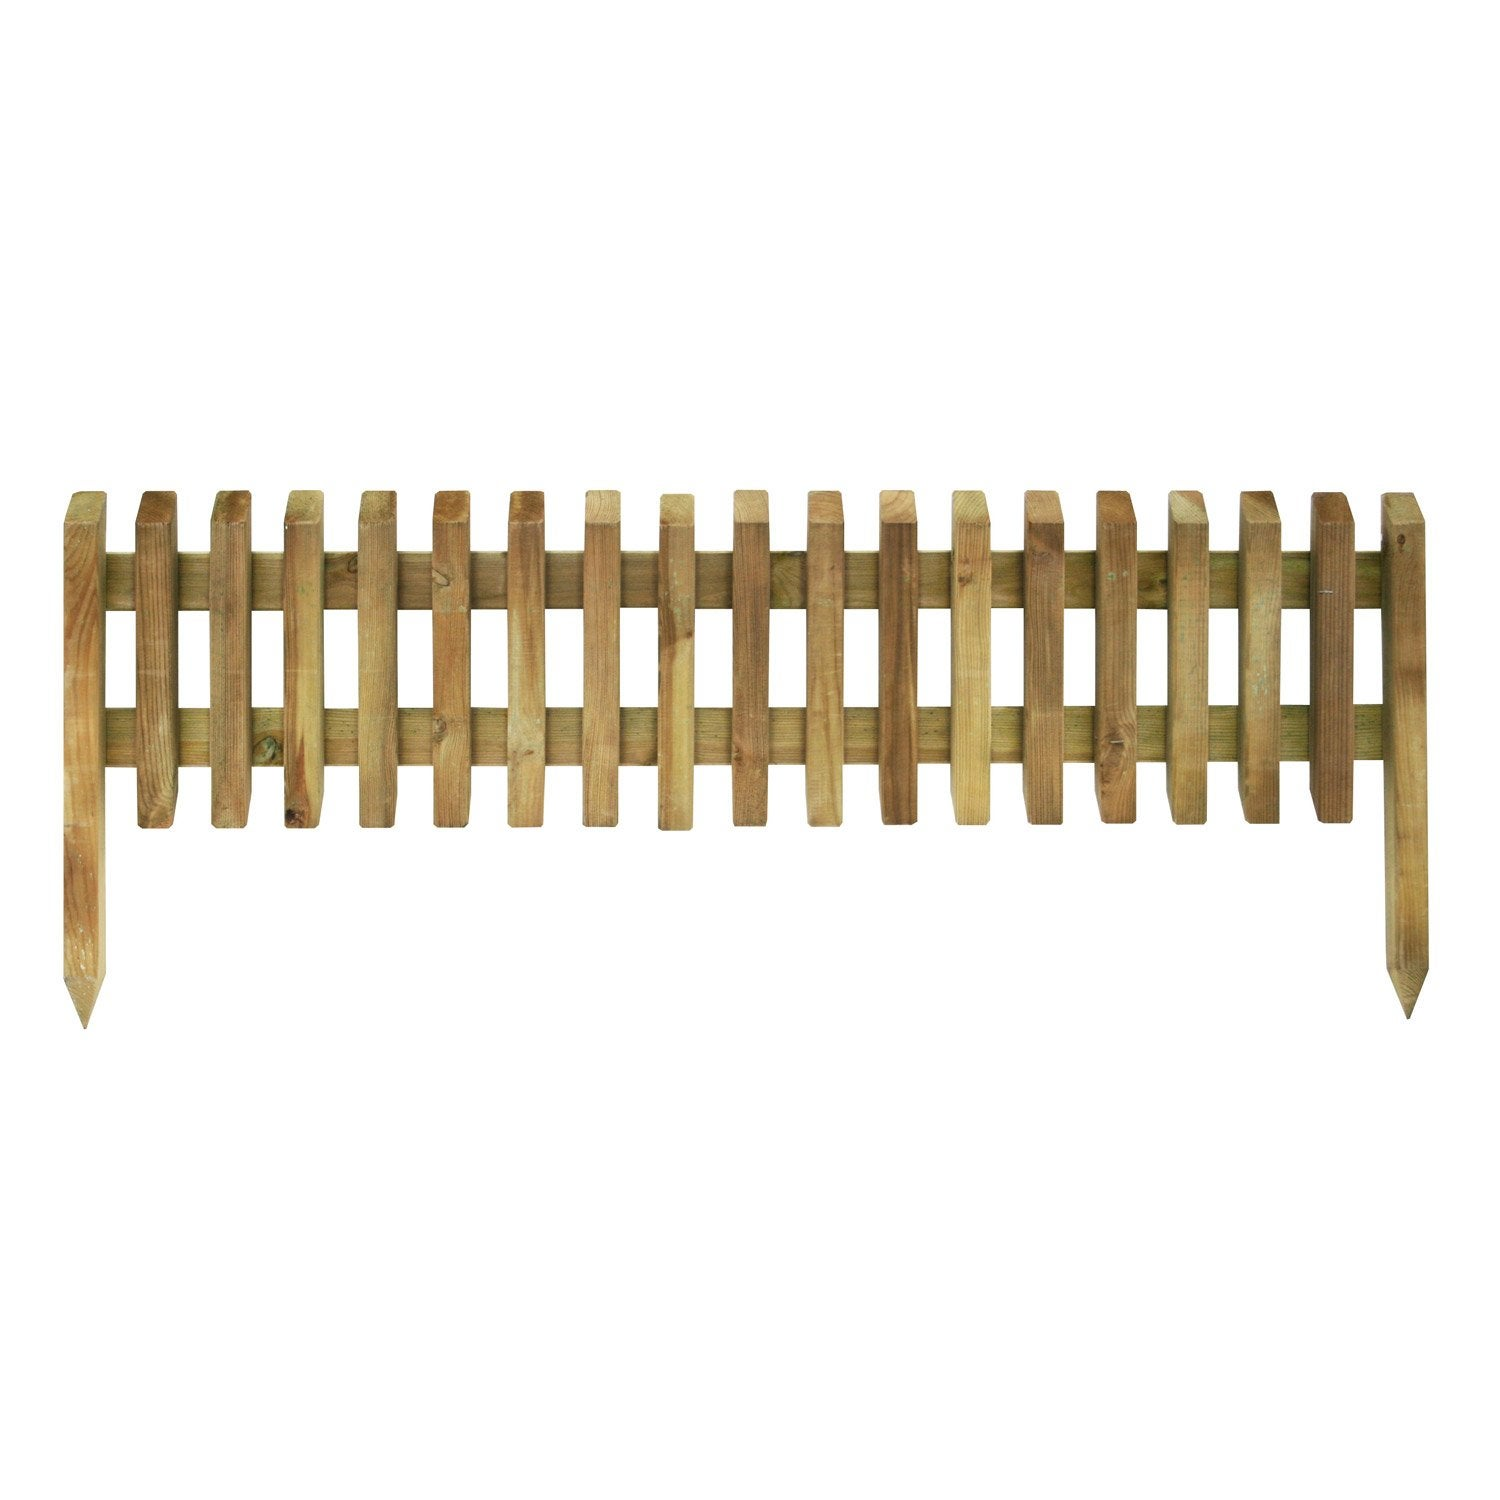 Bordure planter pikasso bois naturel x cm for Bordure en bois de jardin